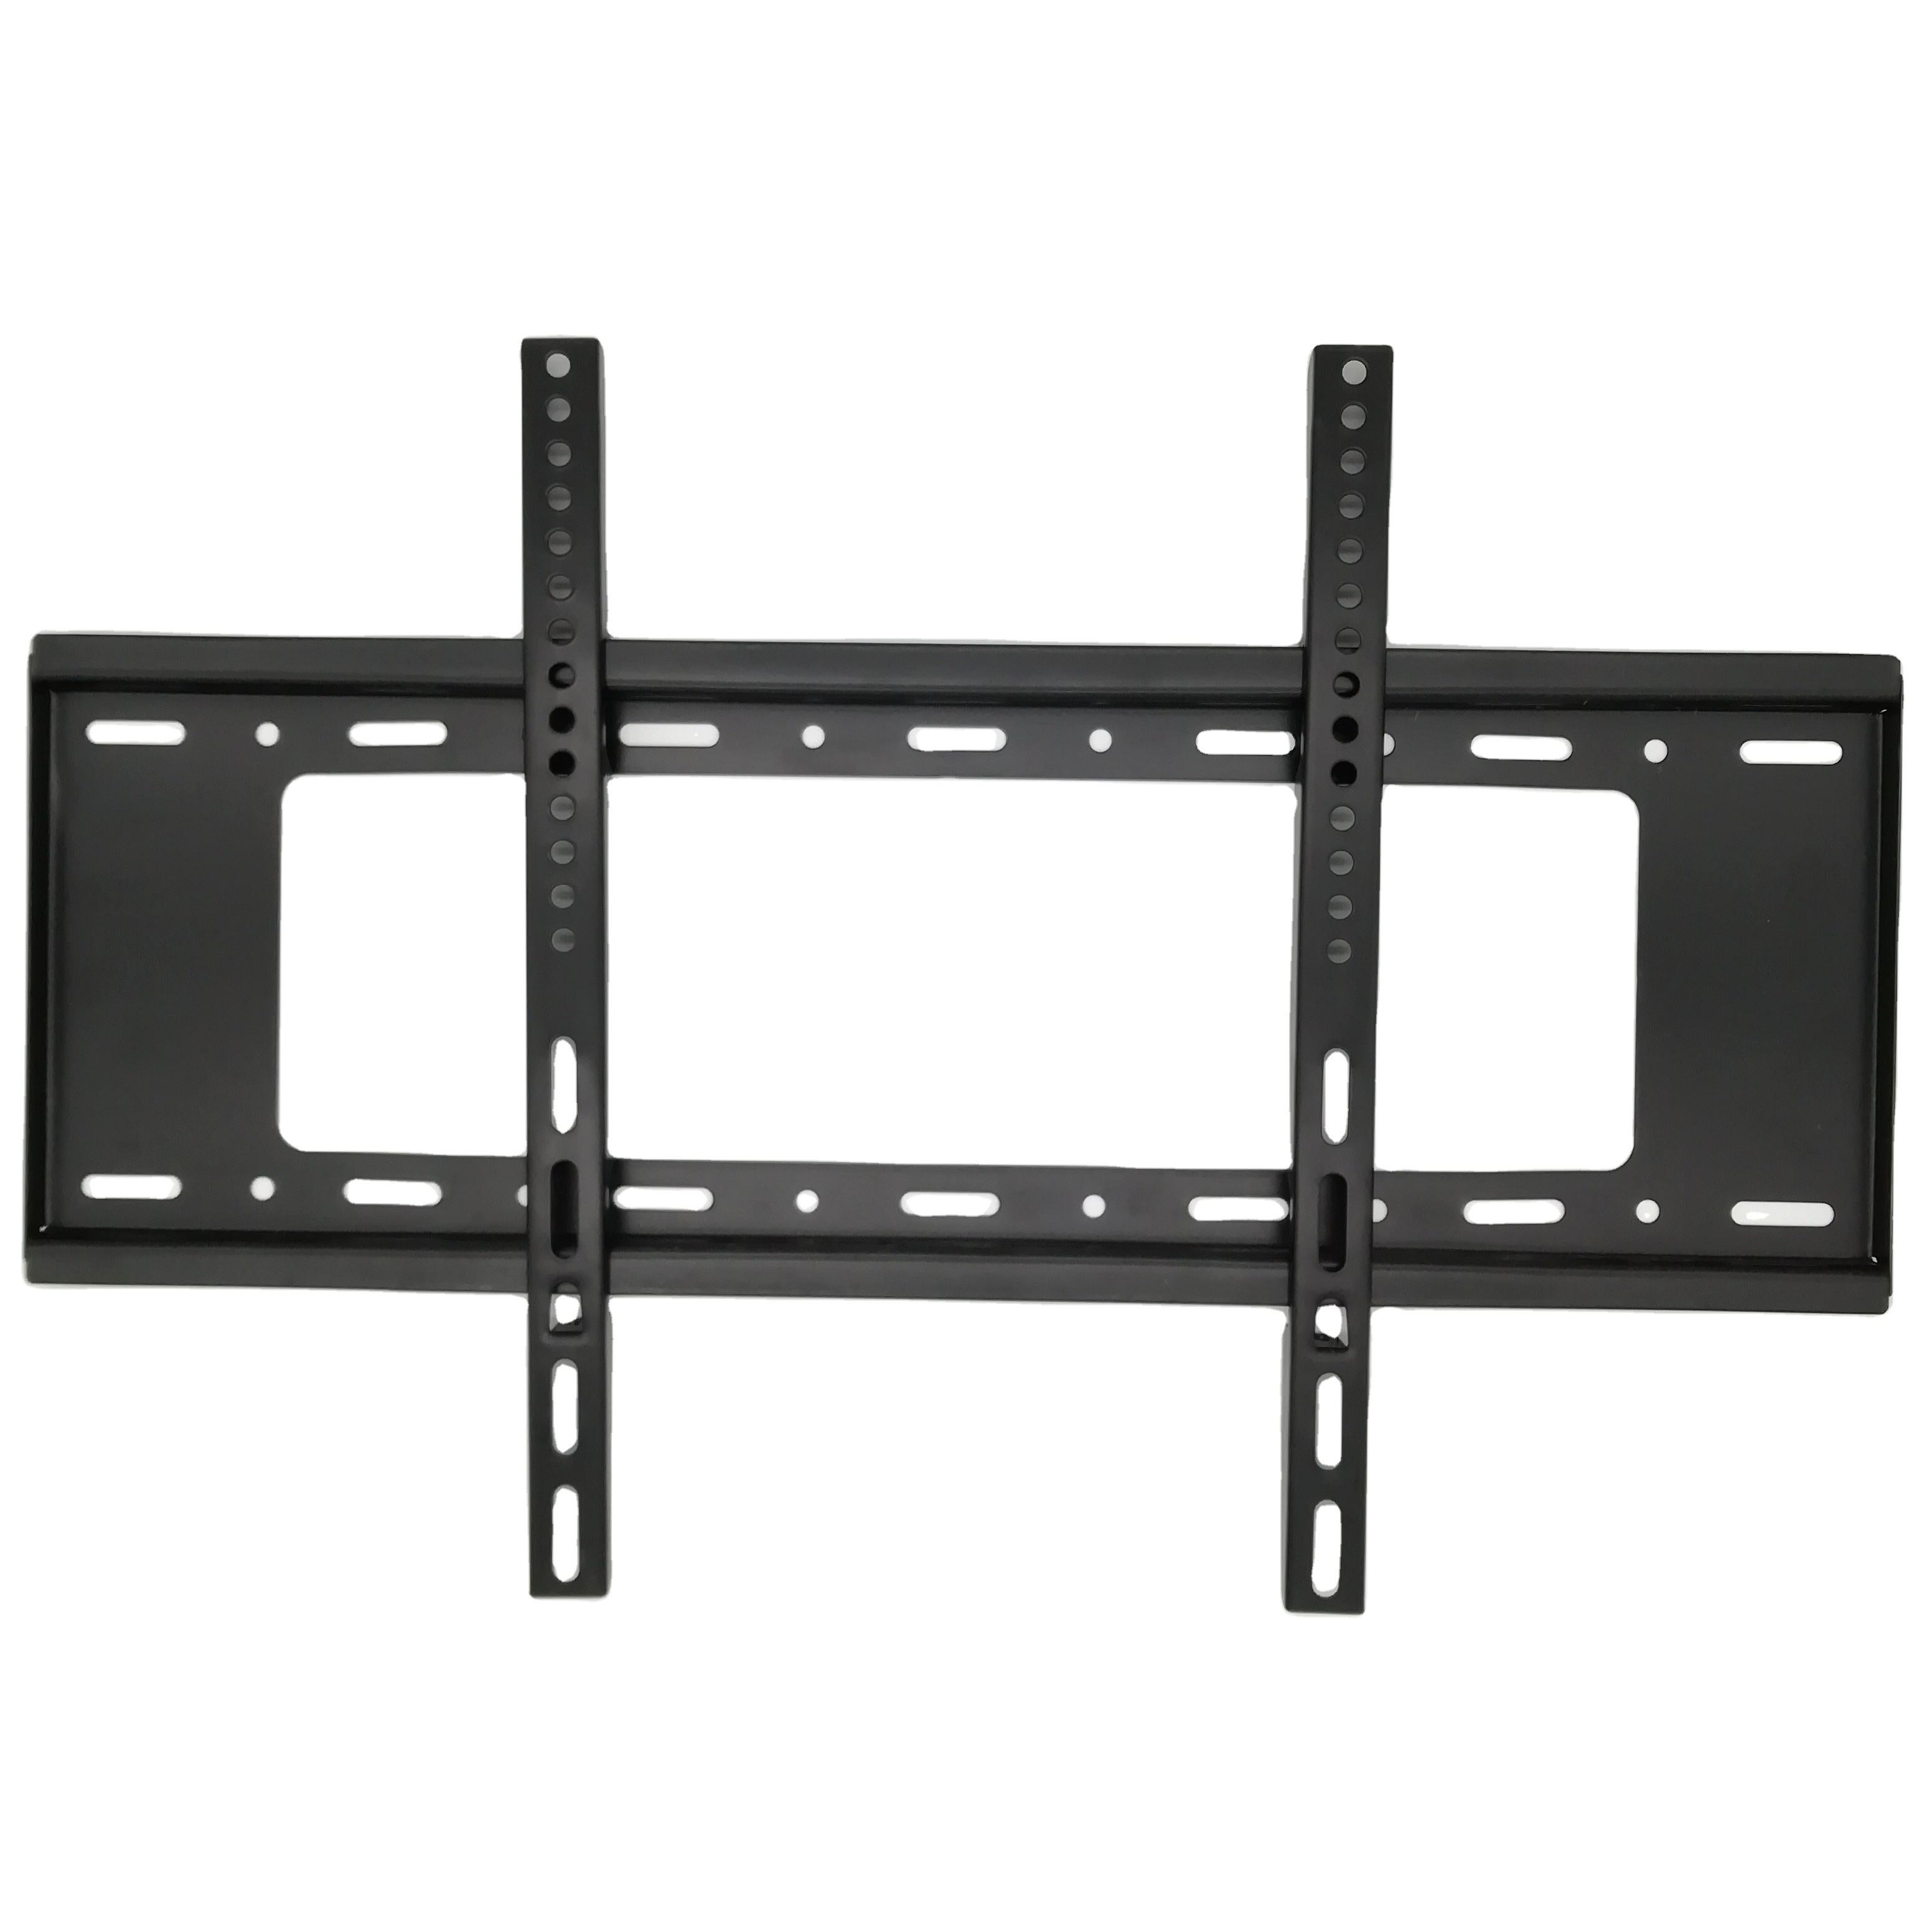 Professional factory supplier tv wall stand mount tv bracket for 40-80 inch led lcd television